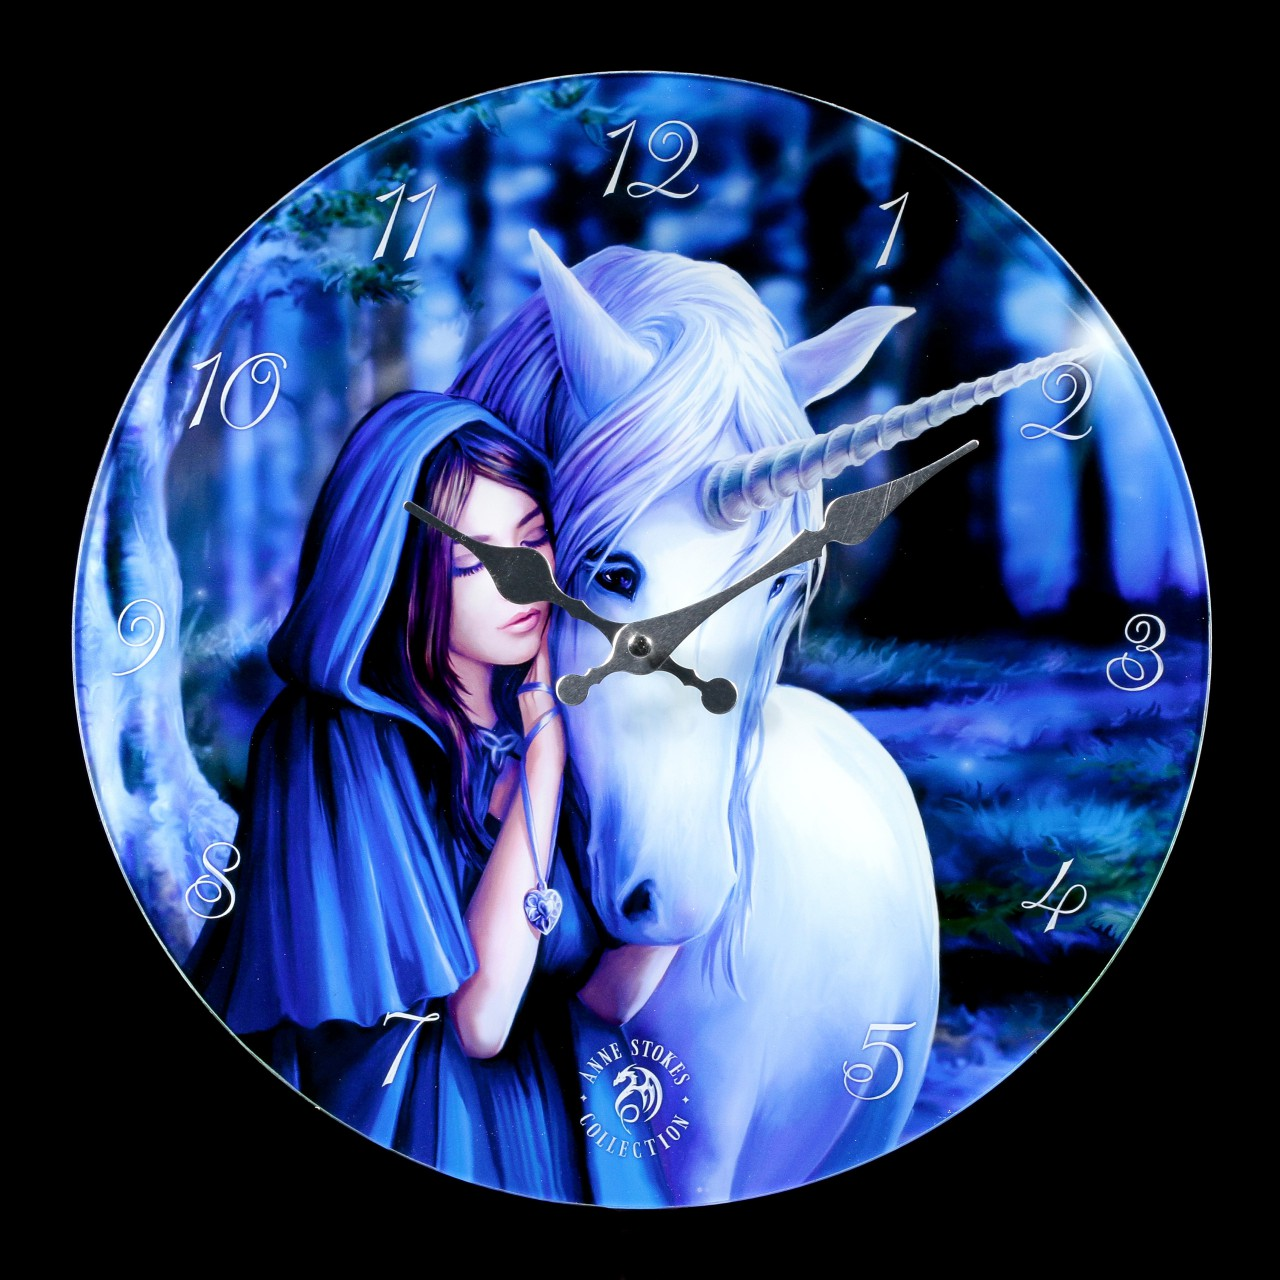 Glass Wall Clock with Unicorn - Solace